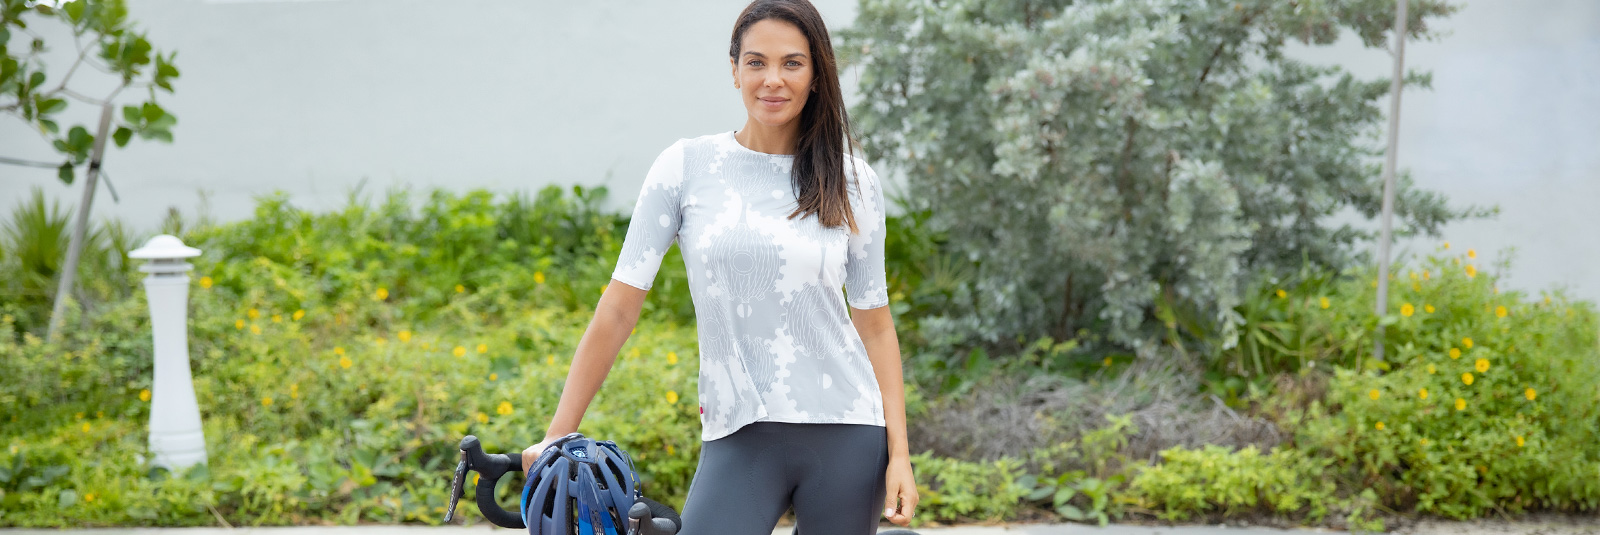 Women's Short Sleeve Cycling Tops